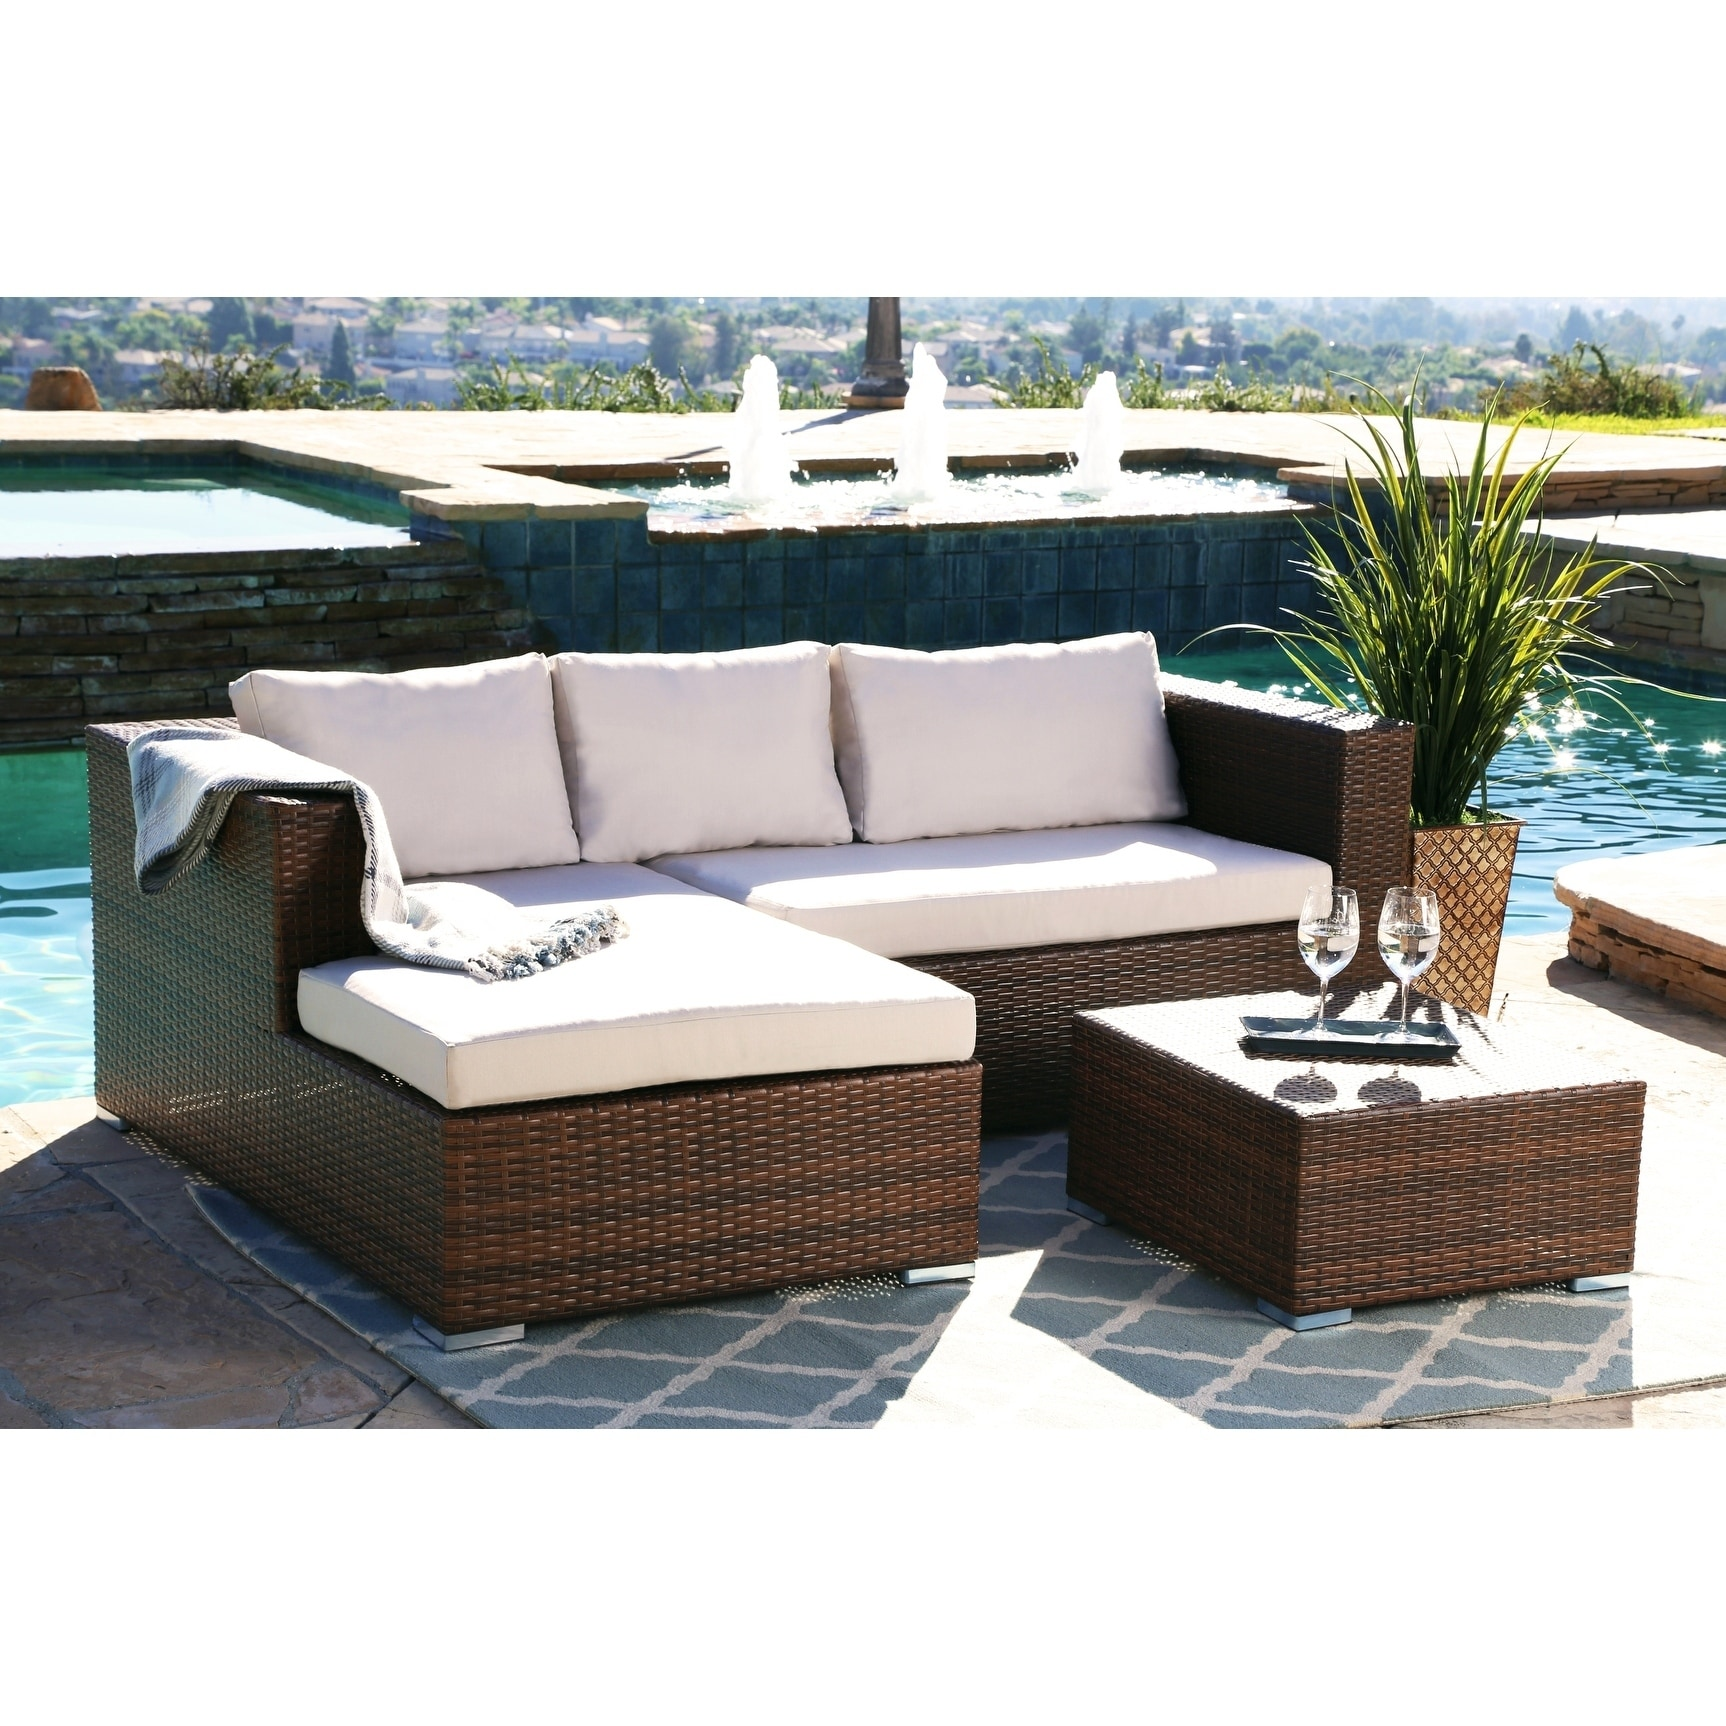 set best wicker sofa collections outdoor patio leisure blue exterior grey awesome piece furniture of sectional forsyth made